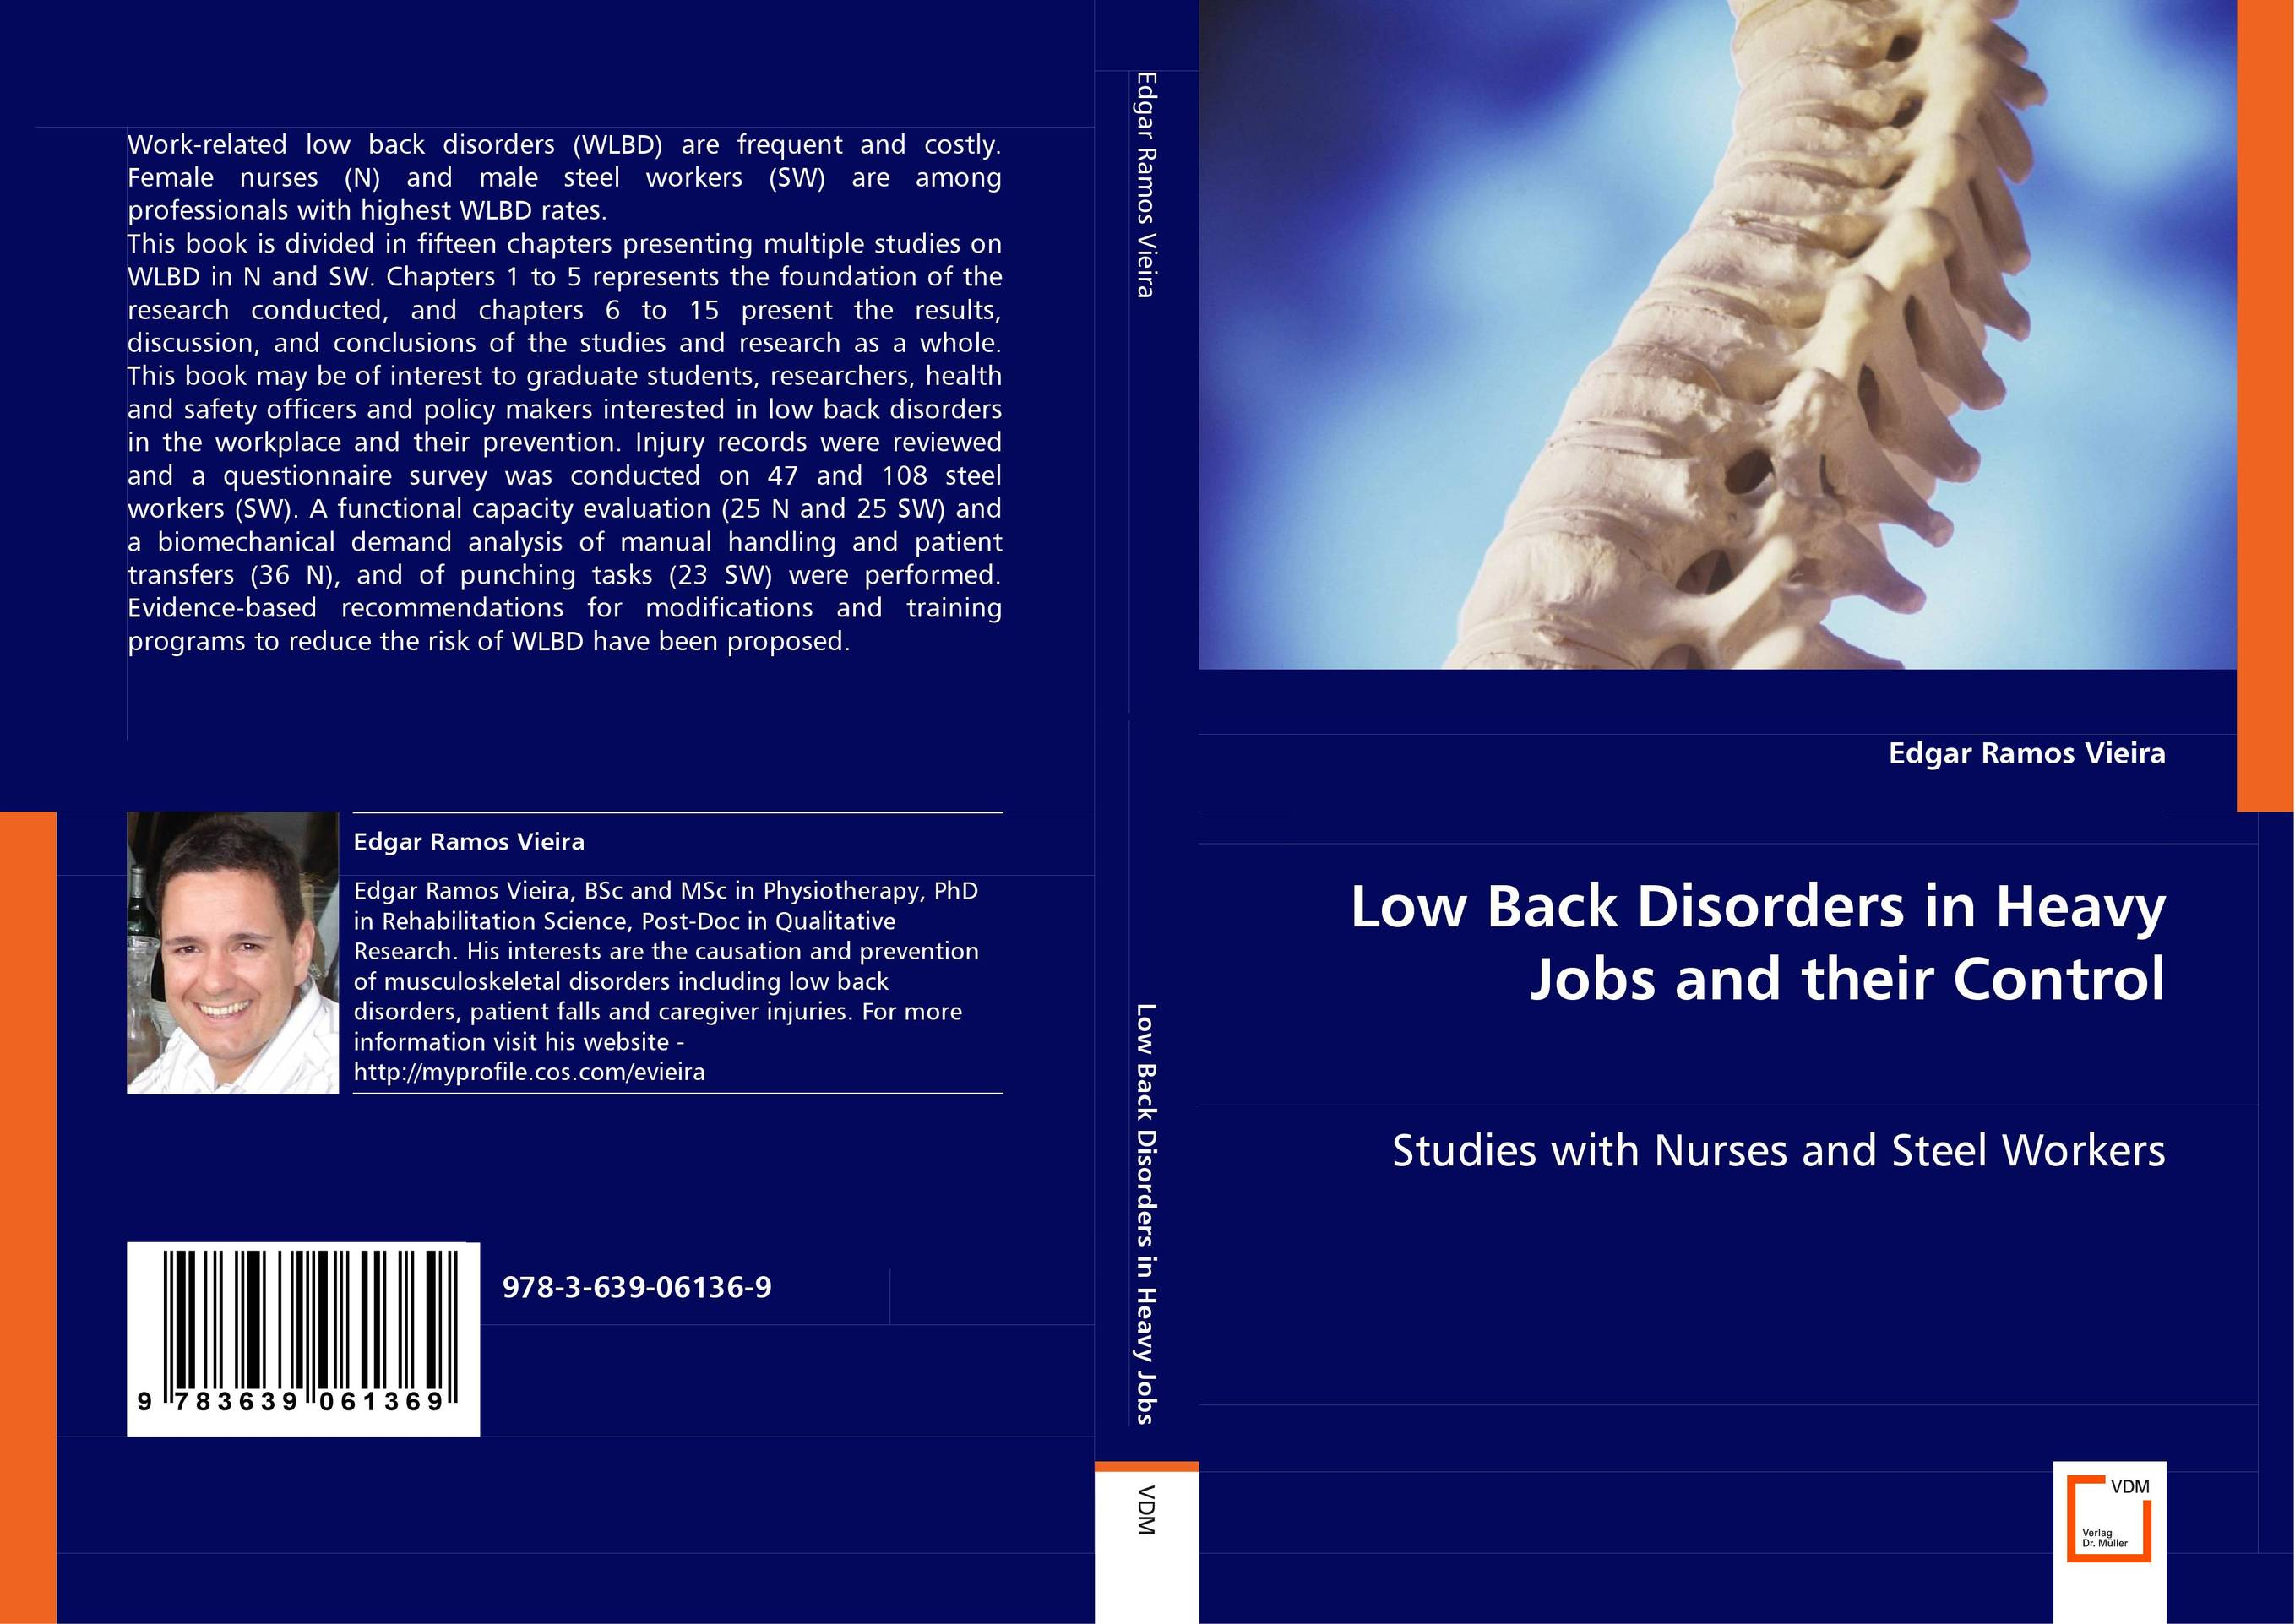 Low Back Disorders in Heavy Jobs and their Control low back disorders in heavy jobs and their control